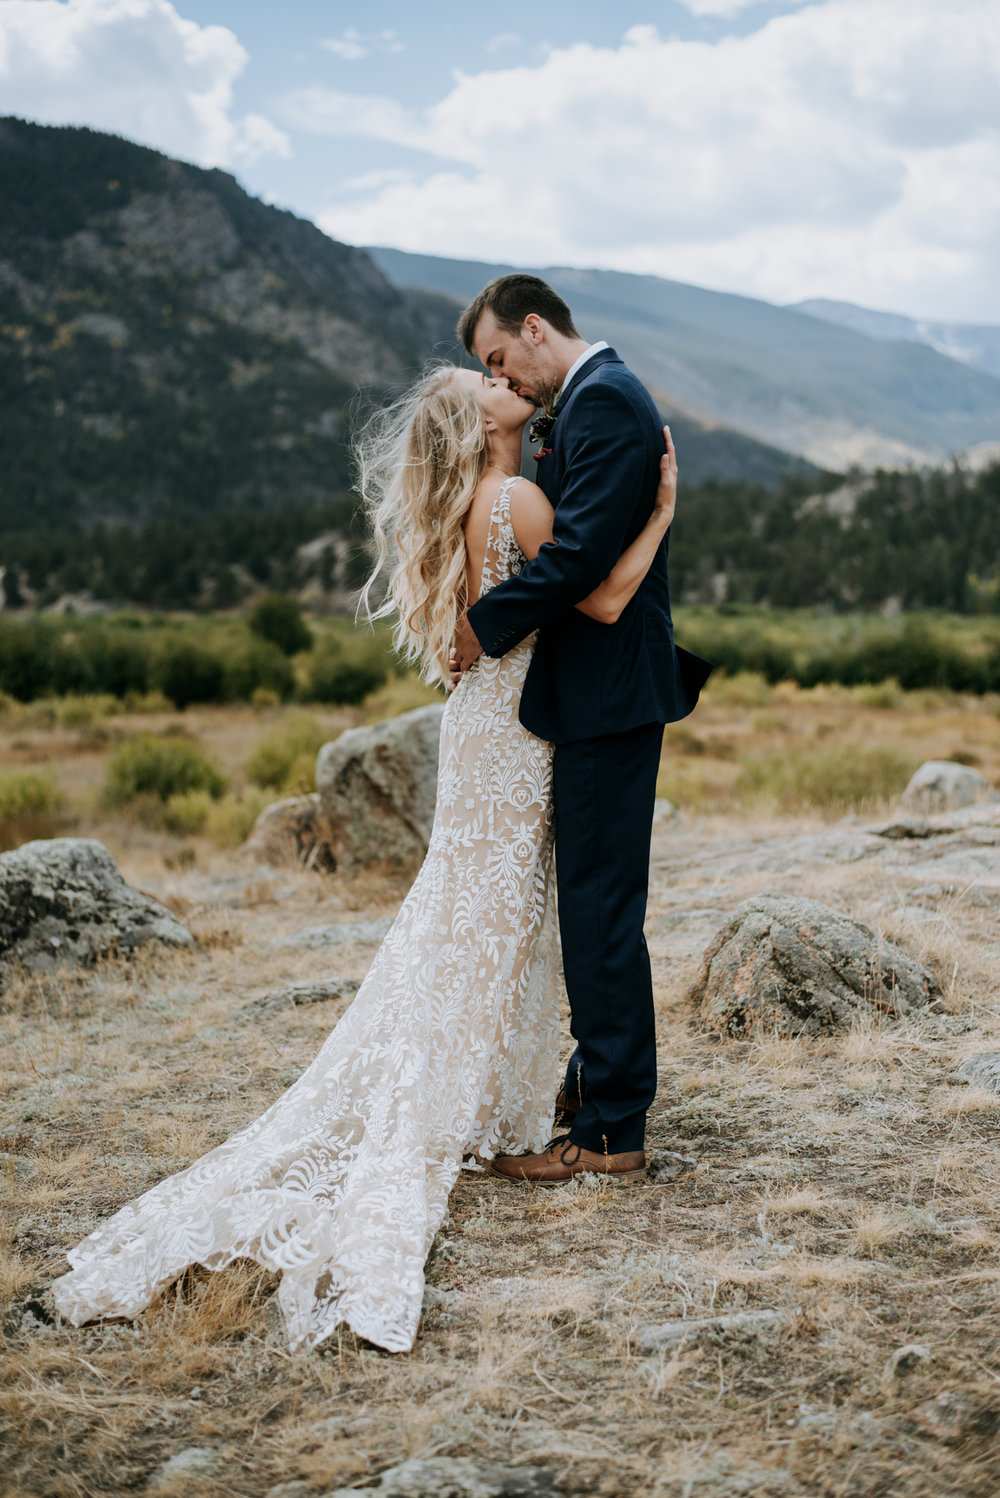 Check out this boho Rocky Mountain National Park wedding.